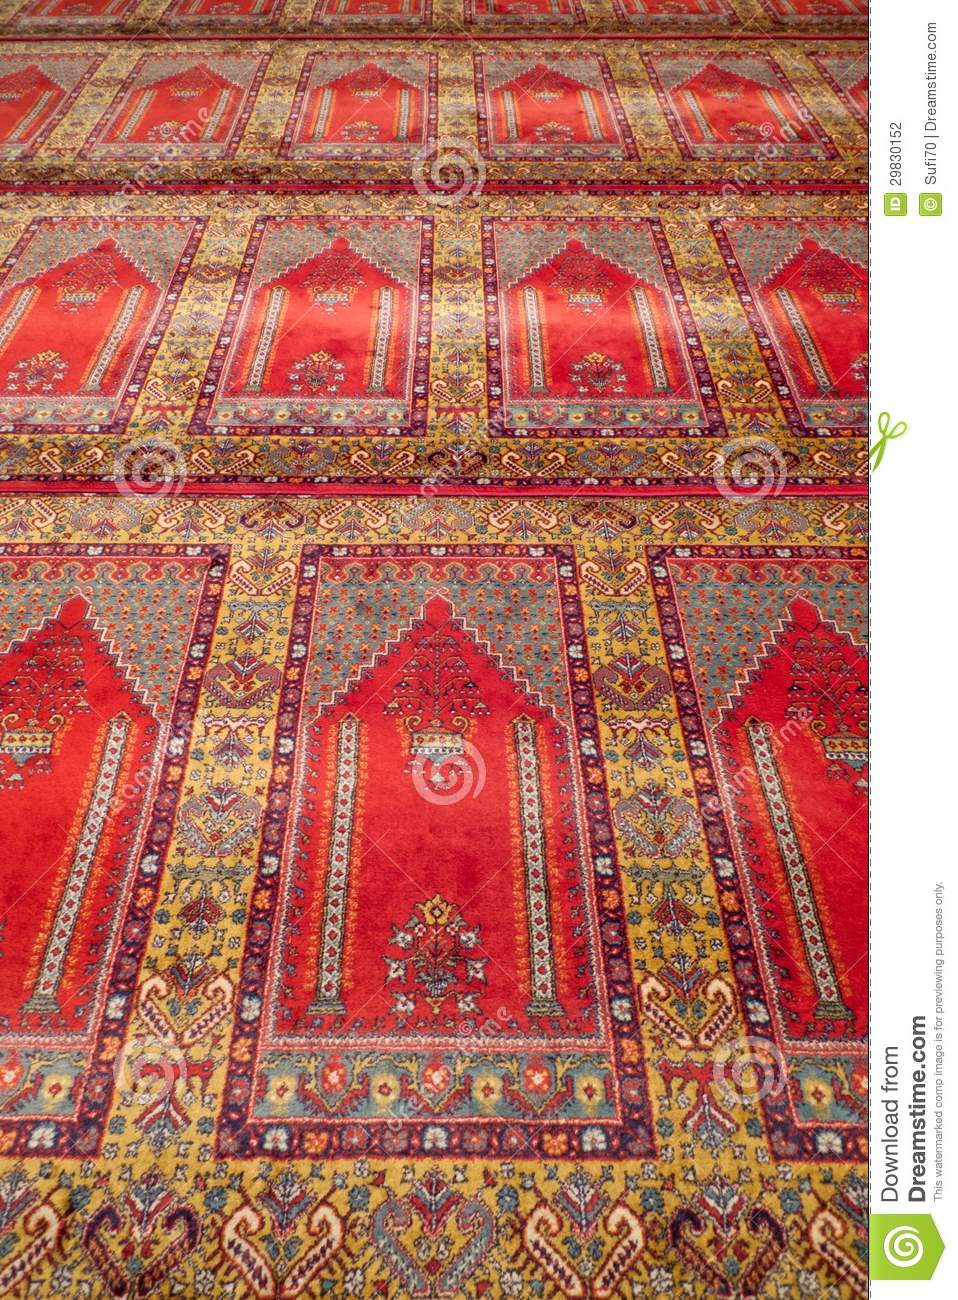 Prayer Rug In A Mosque Stock Photography Image 29830152